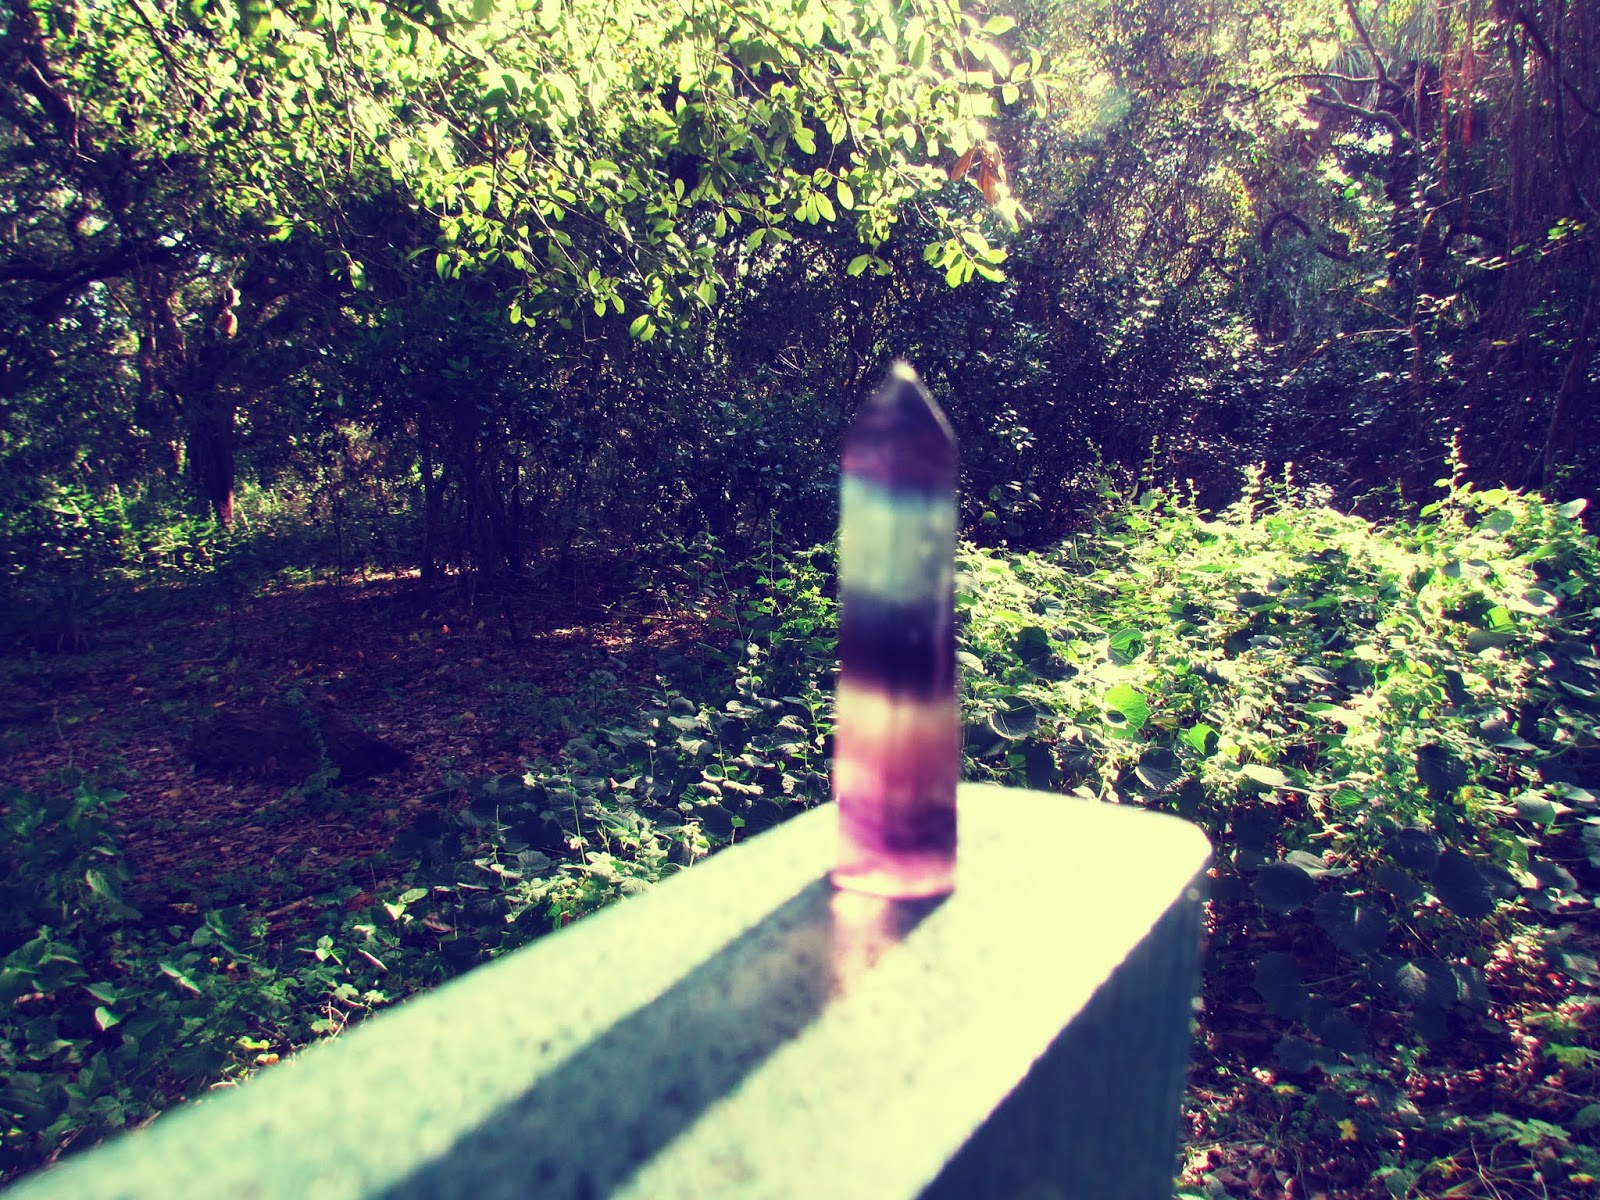 A rainbow fluorite wand with dark colors in a wild nature setting in the woodland of Florida